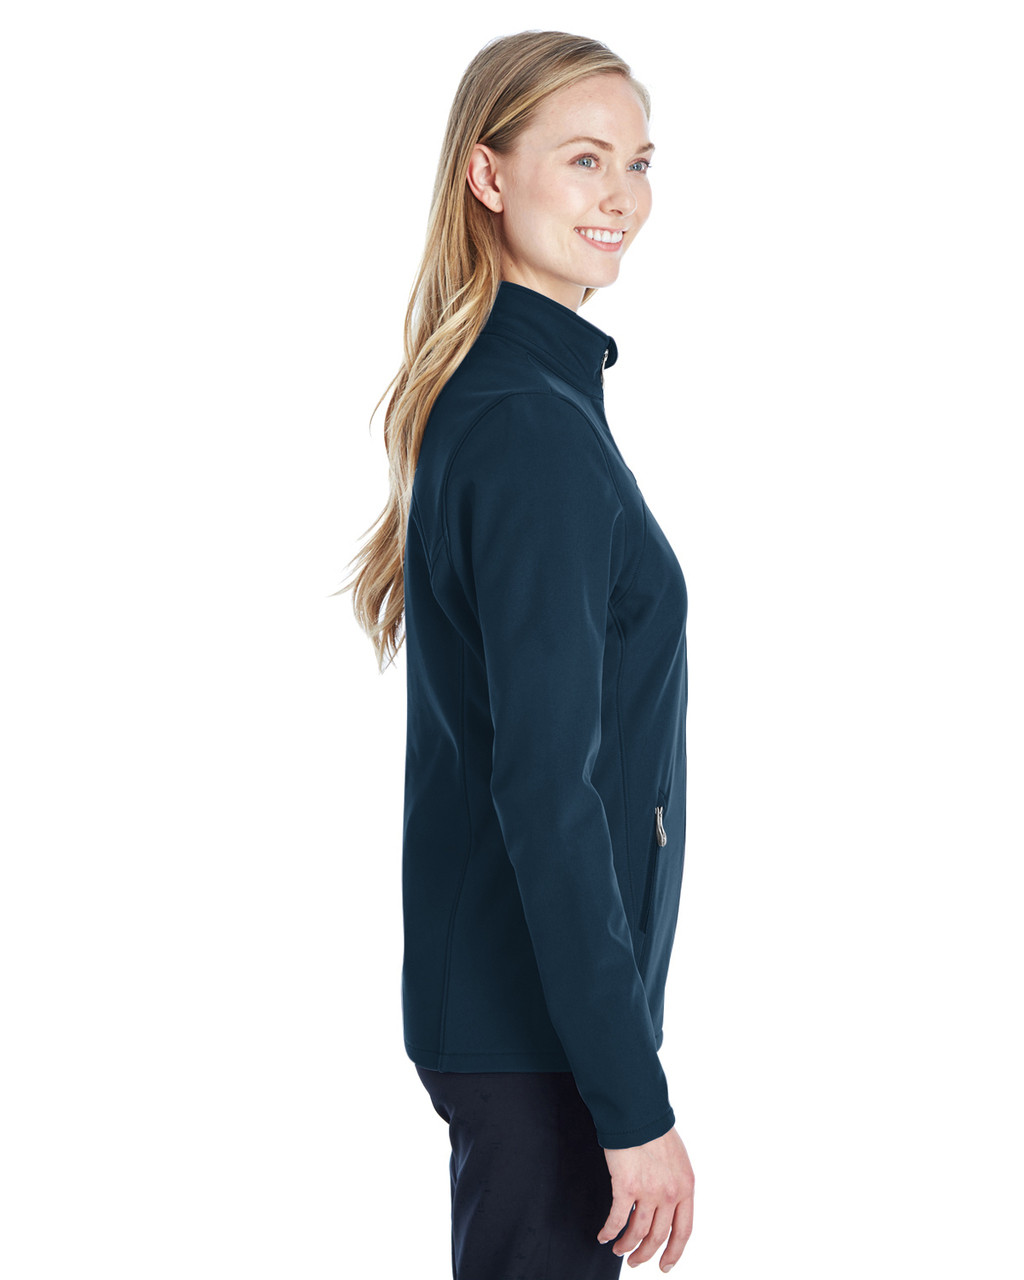 Frontier/ Black, Side - 187337 Spyder Ladies' Transport Softshell Jacket | BlankClothing.ca